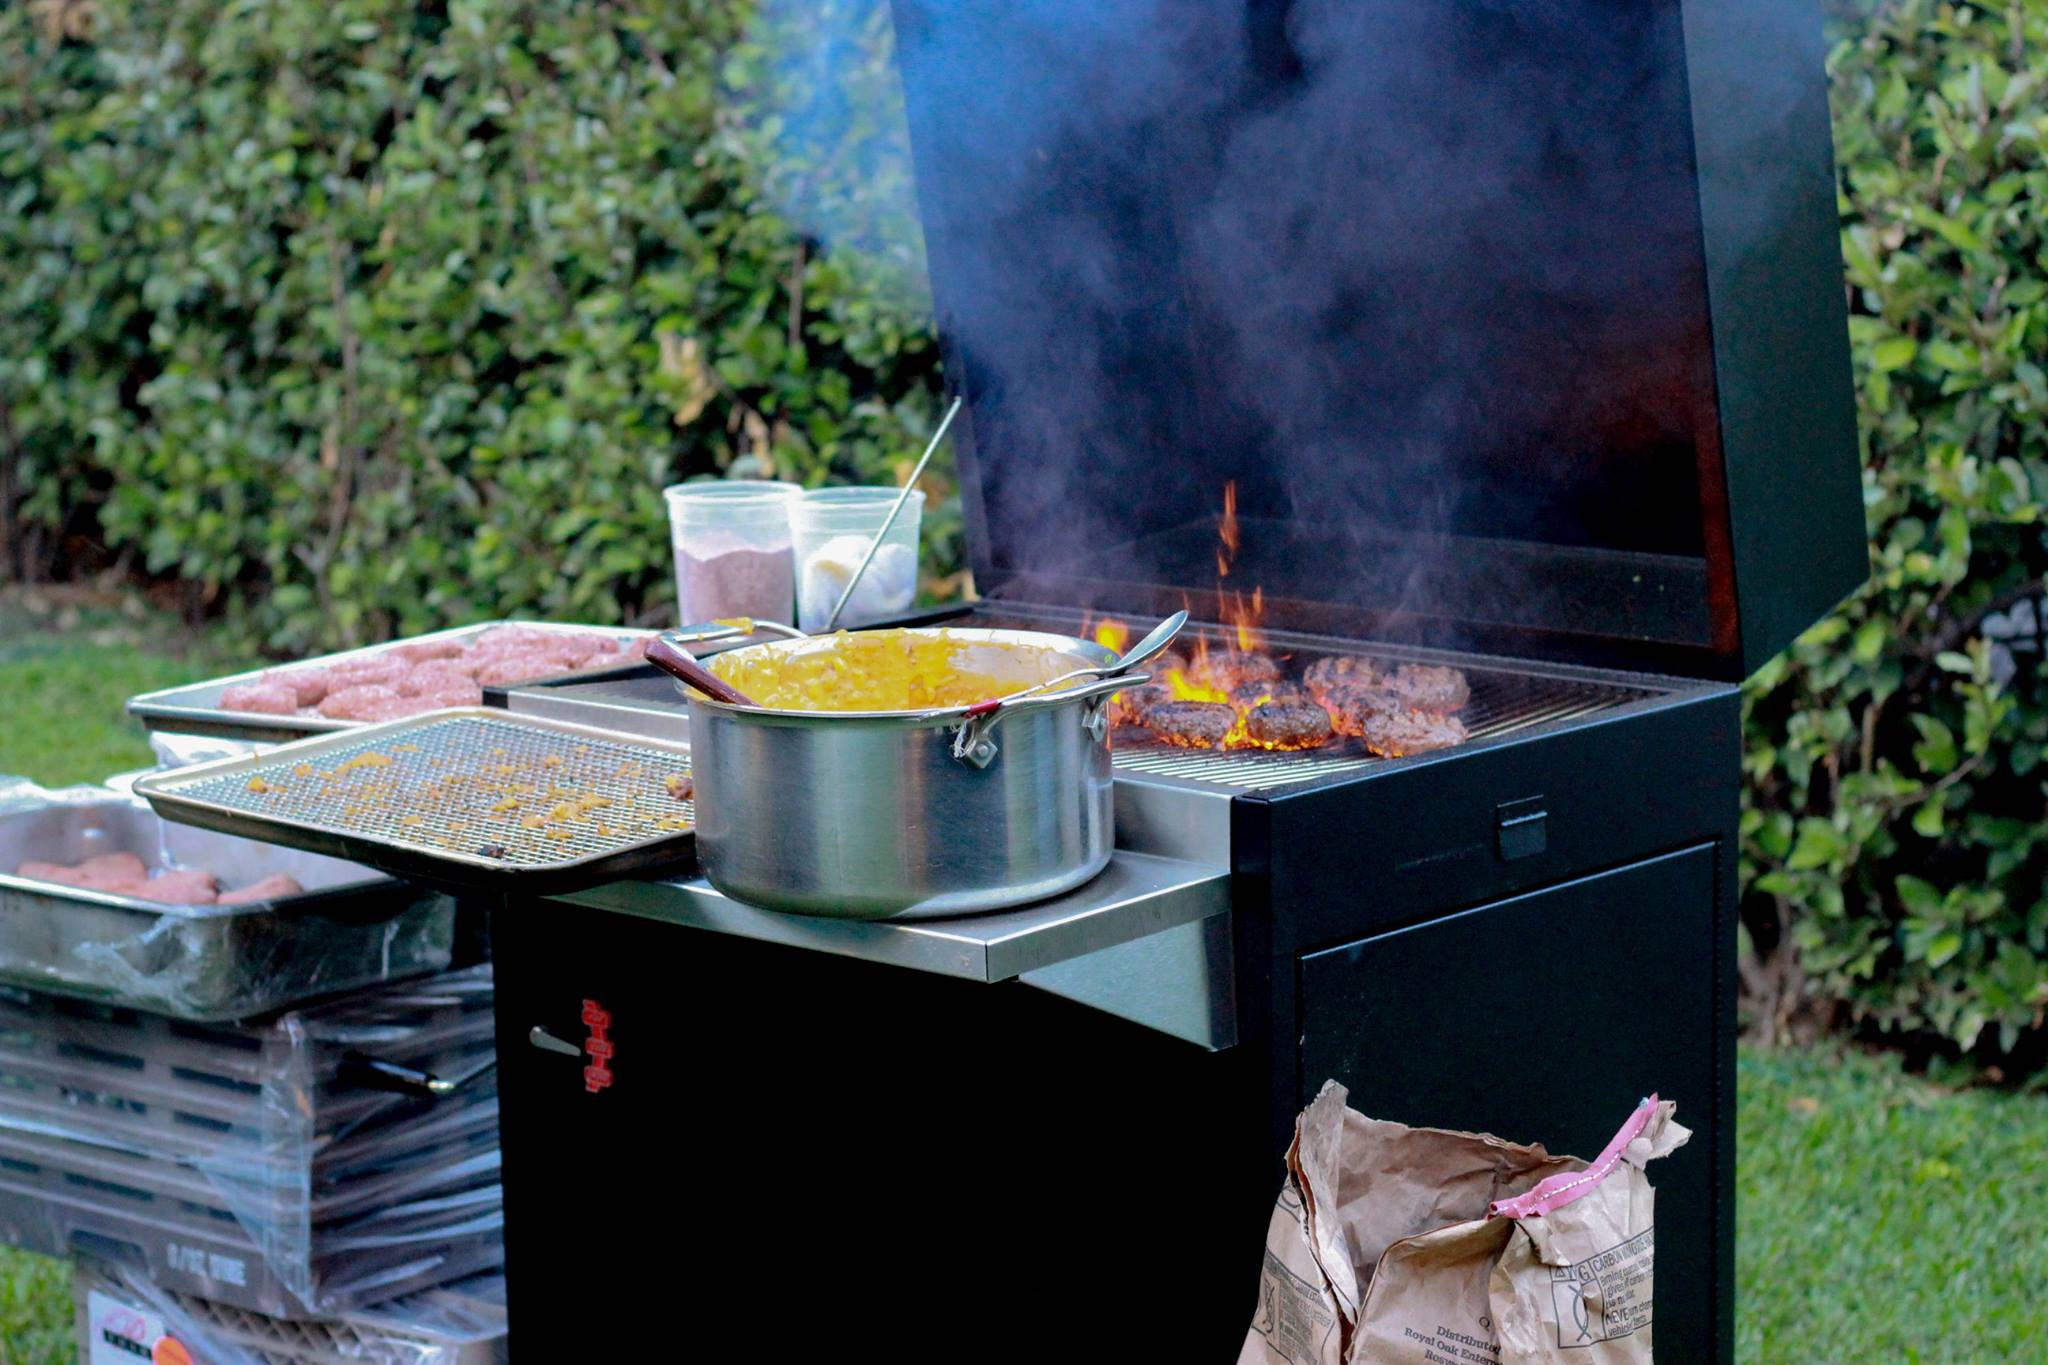 Why Chefs Love This Tulsa-Made Grill So Much